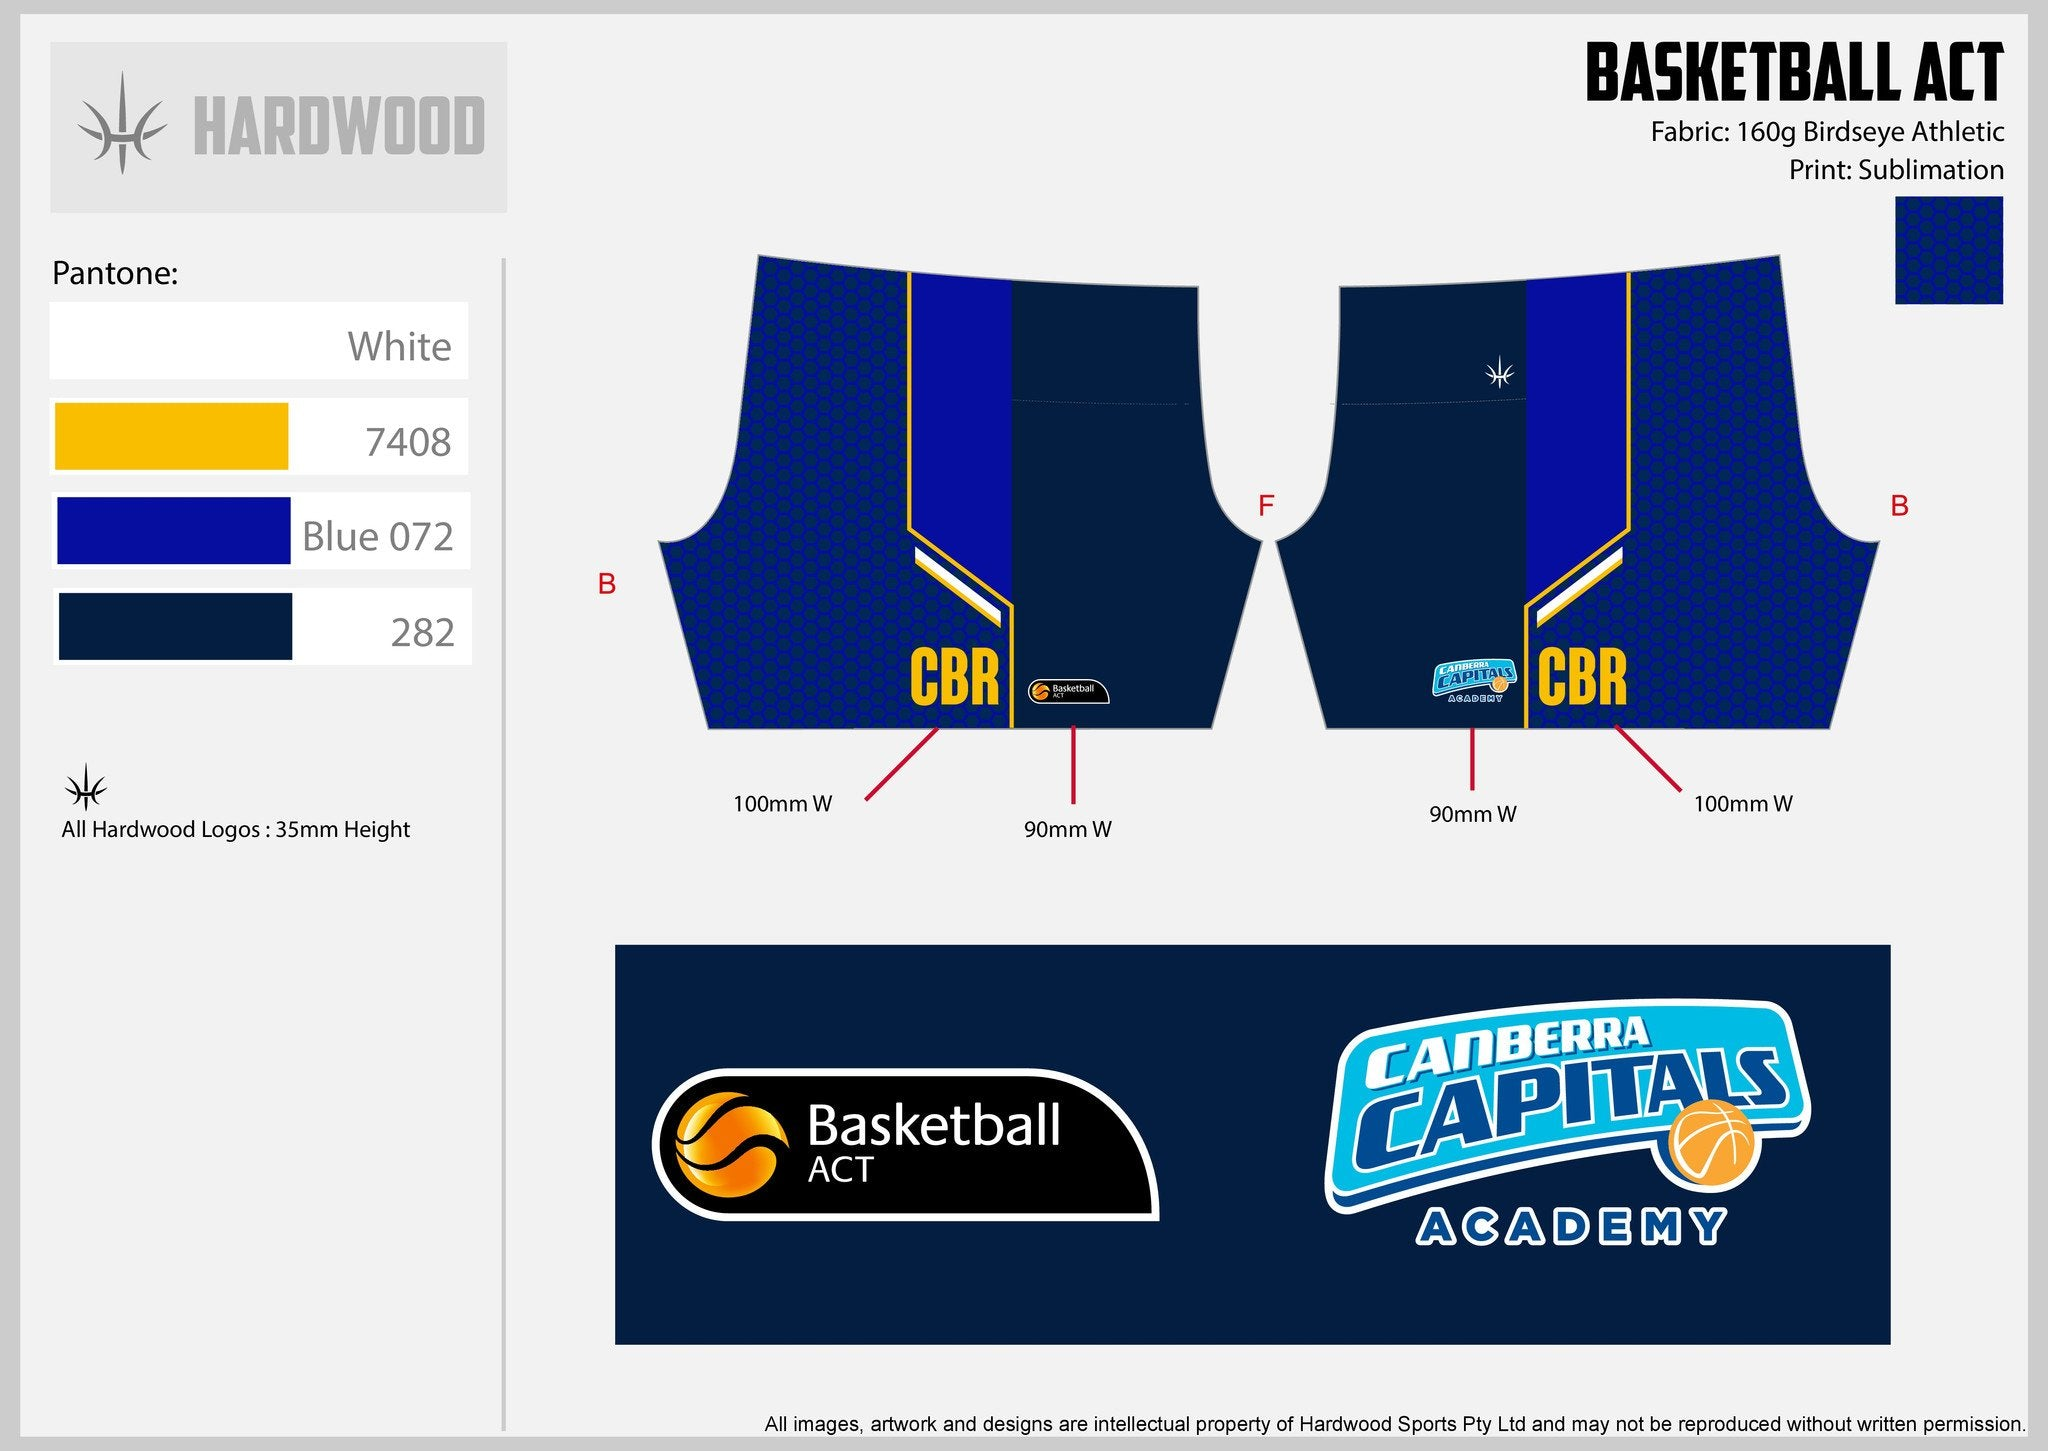 Canberra Capitals Academy Basketball Shorts